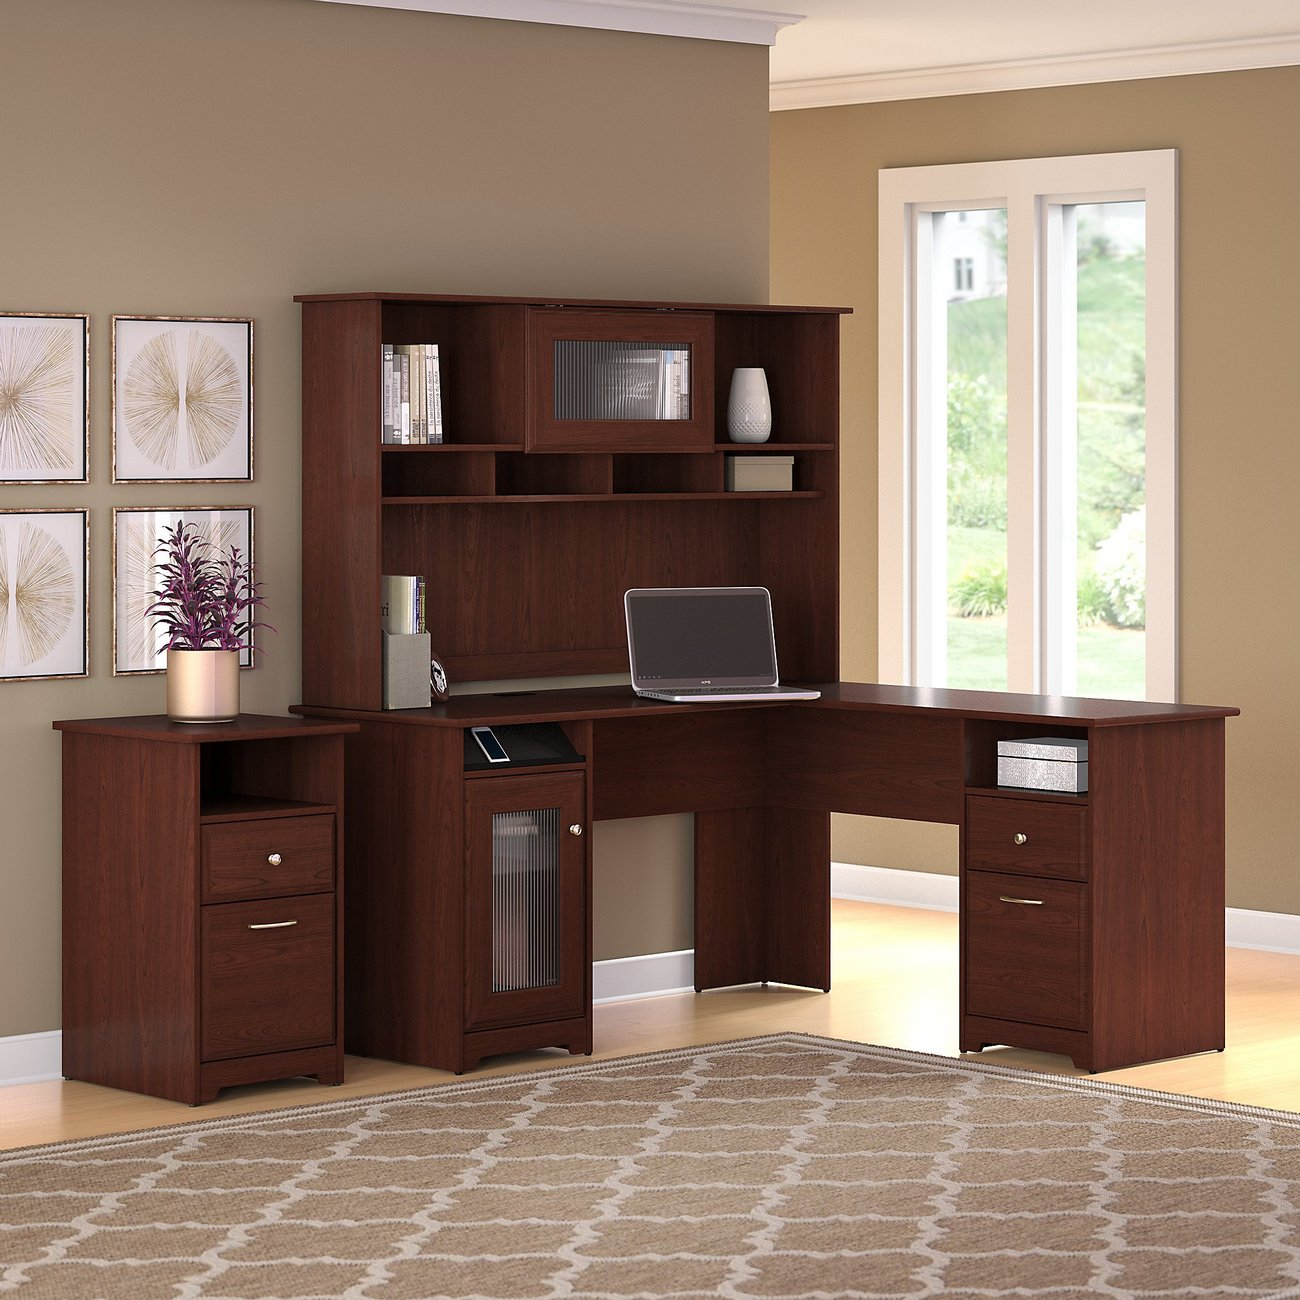 Cabot L Shaped Desk W Hutch 2 Drawer File Cabinet In Harvest Cherry Bush Furniture Cab018hvc